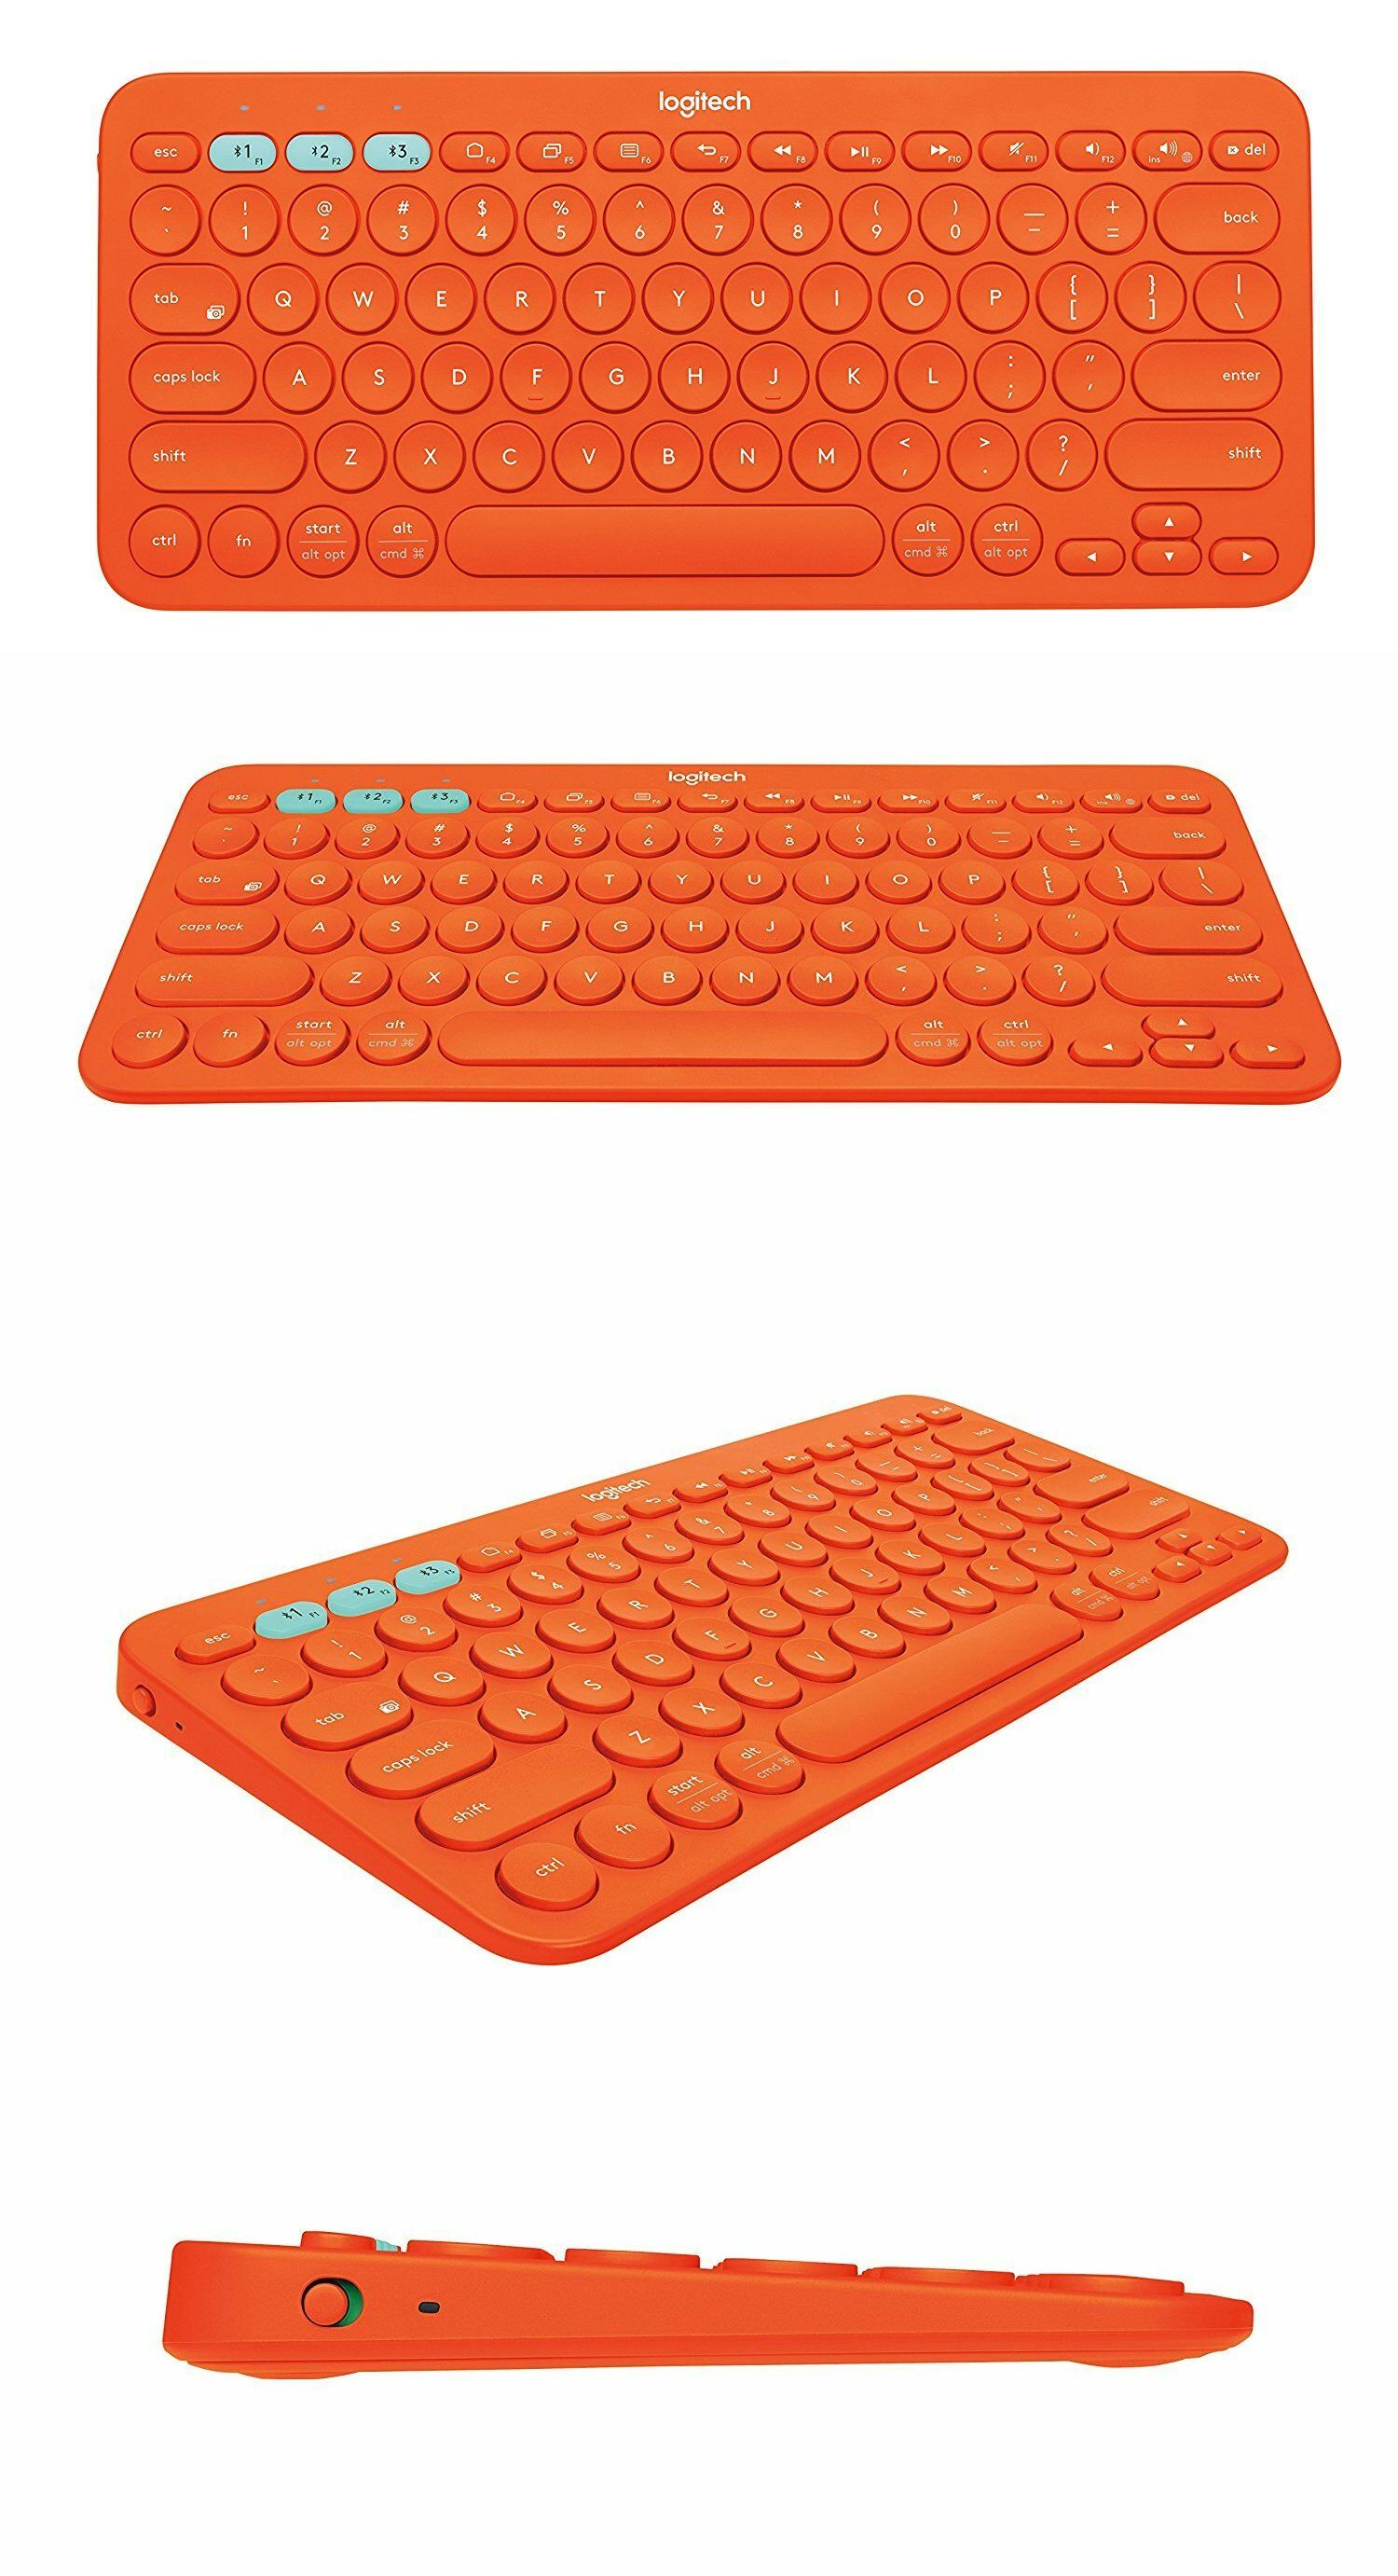 Keyboards and Keypads 33963: Logitech K380 Multi-Device